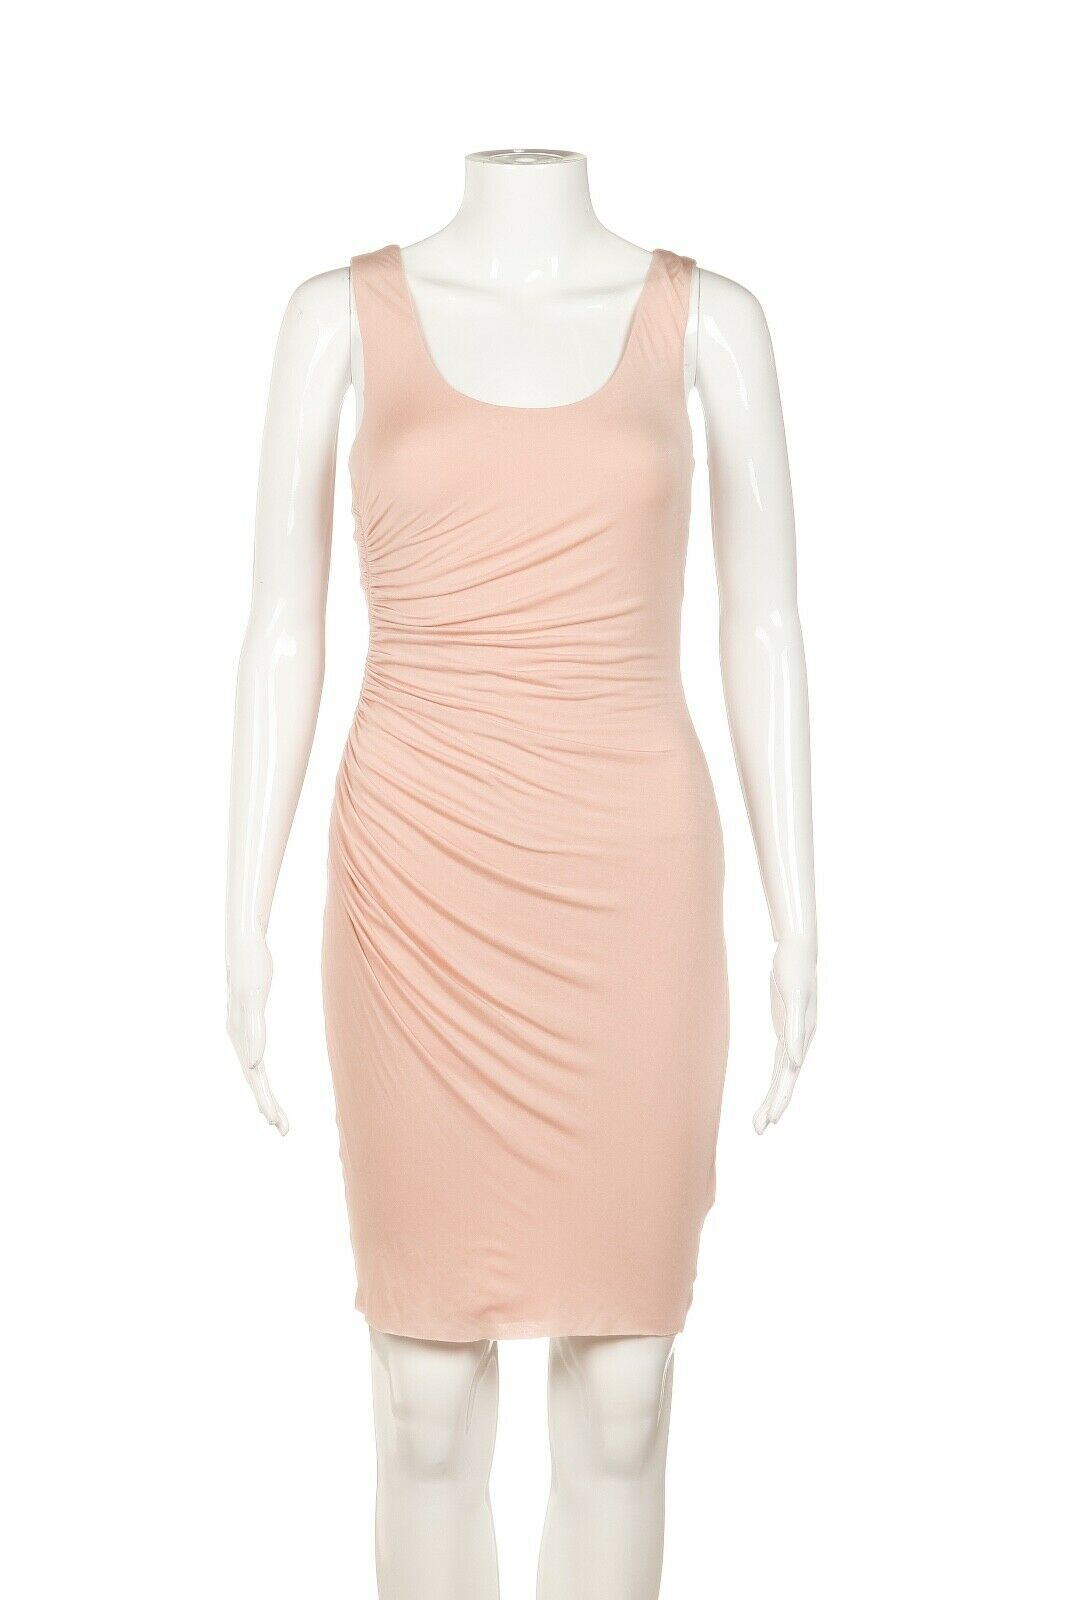 BAILEY 44 Ruched Bodycon Dress Size S